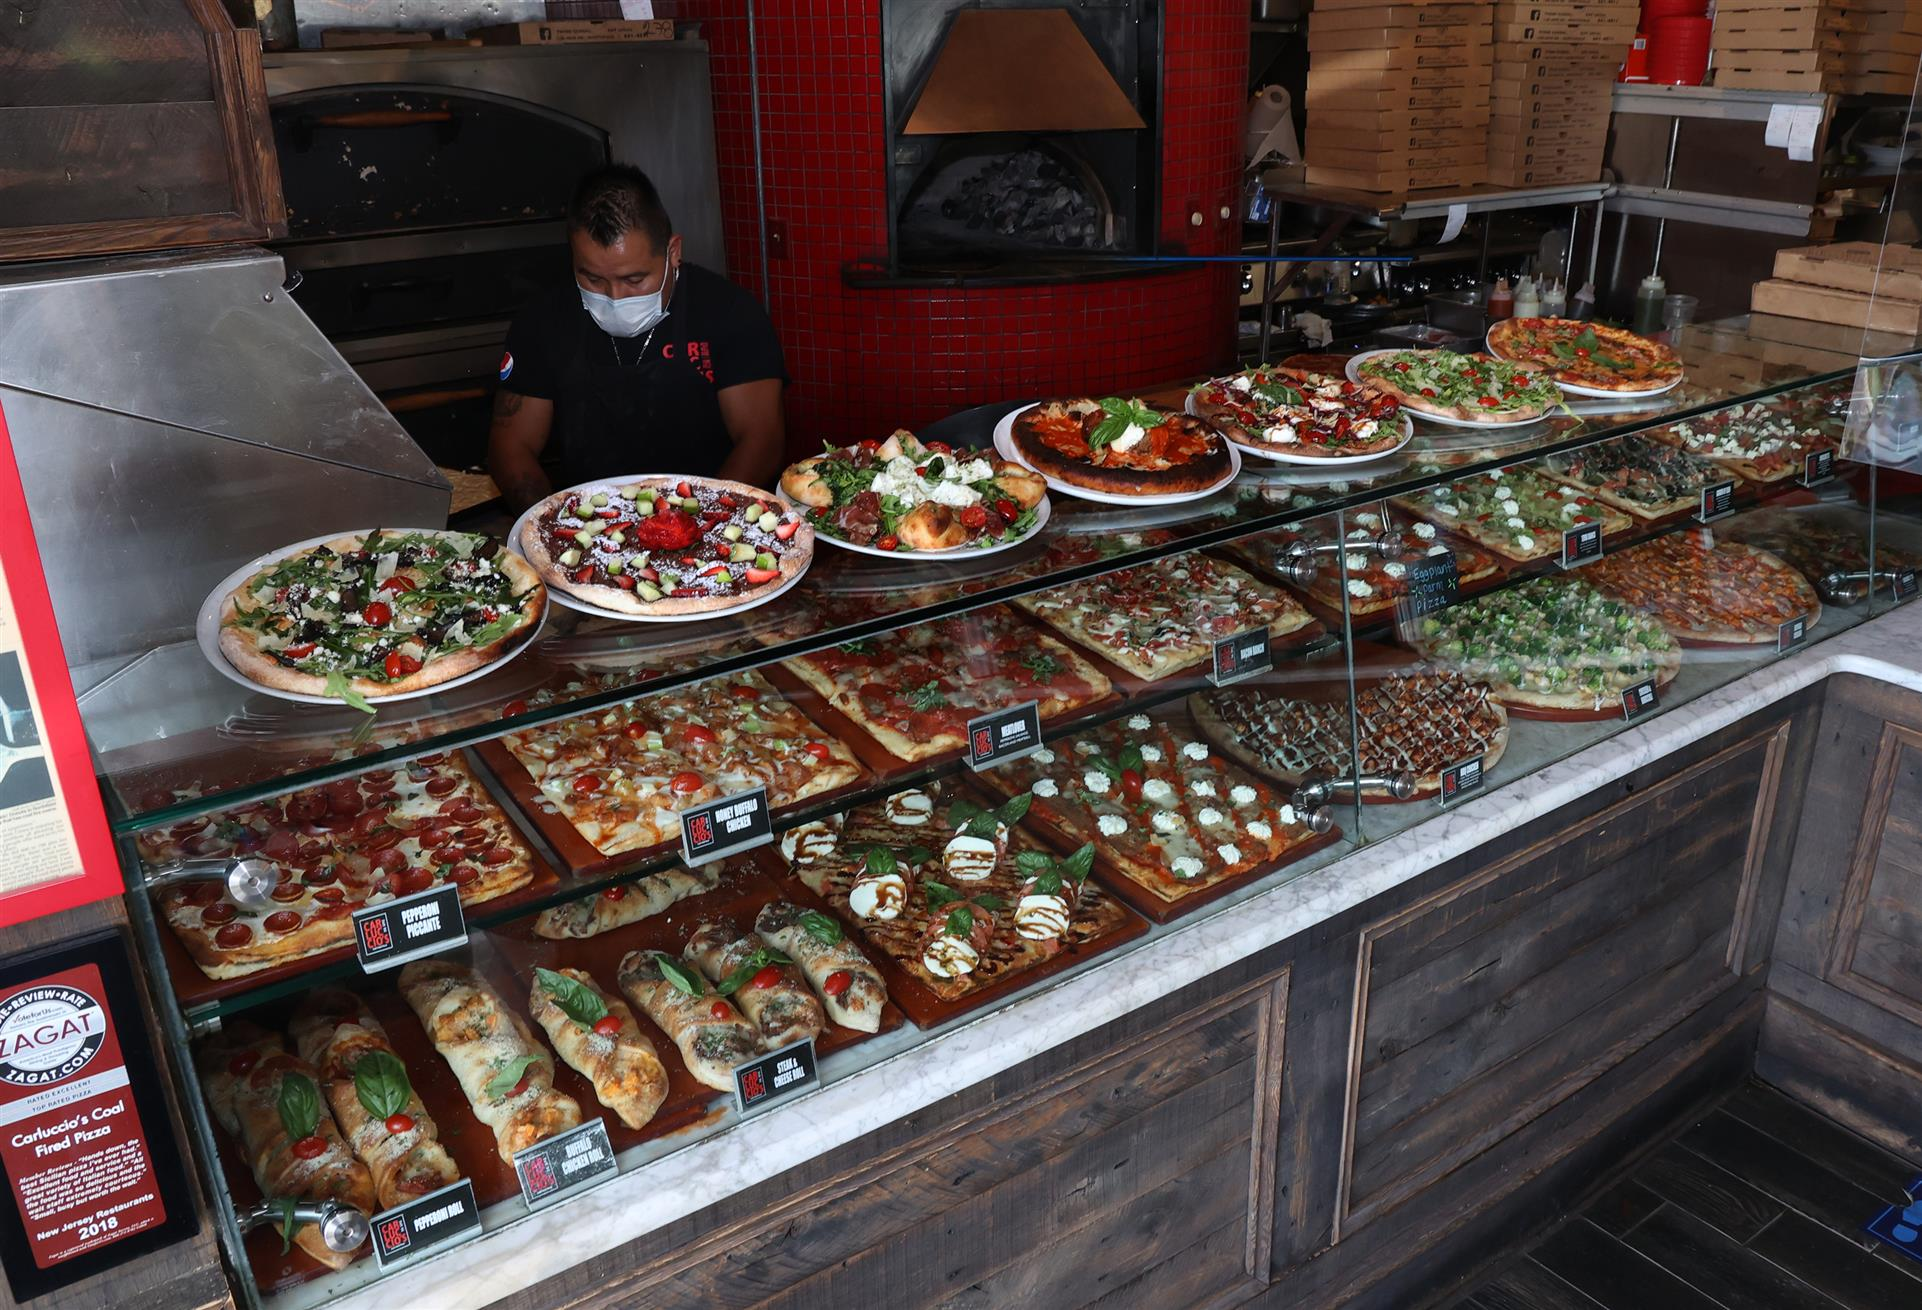 a variety of pizzas and calzones behind a glass window inside the restaurant